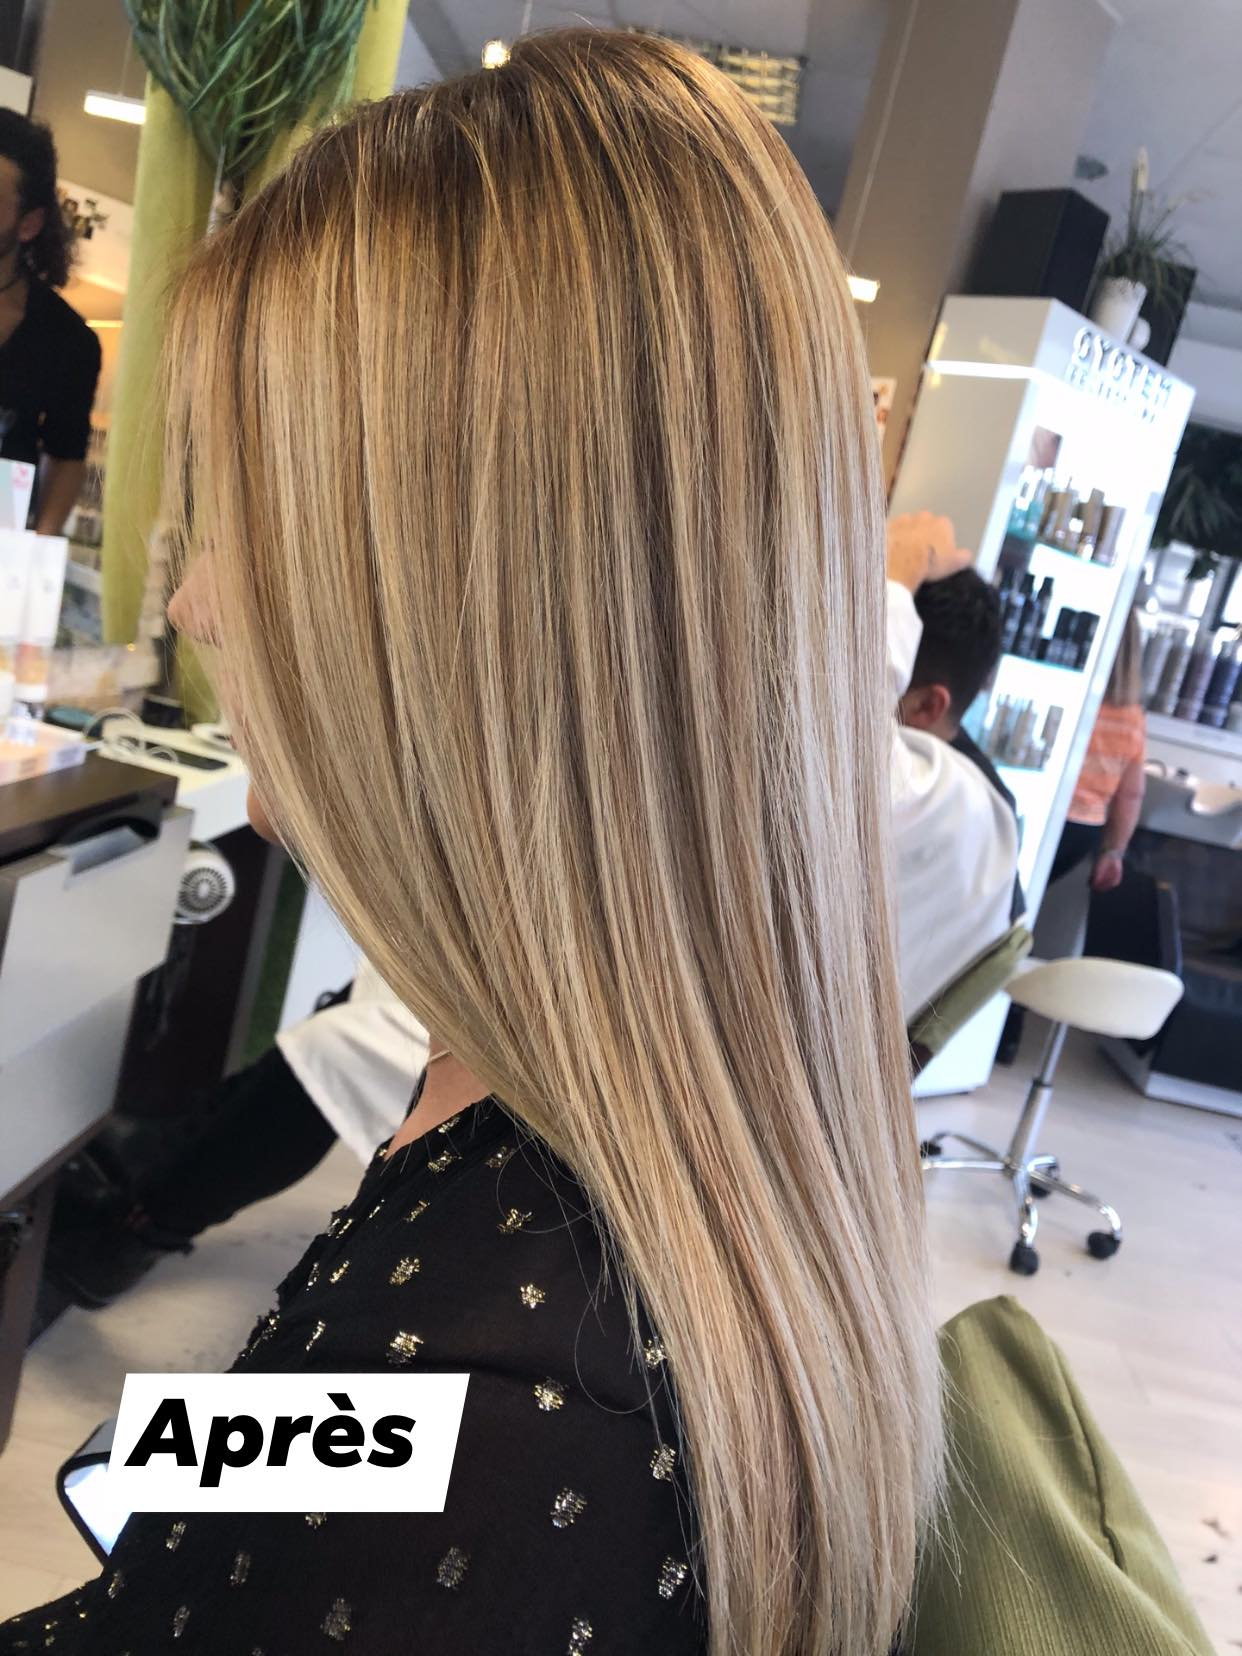 https://the-place-to-be.fr/wp-content/uploads/2021/06/coiffure-avant-apres-david-camino-bordeaux-94b4043f.jpg